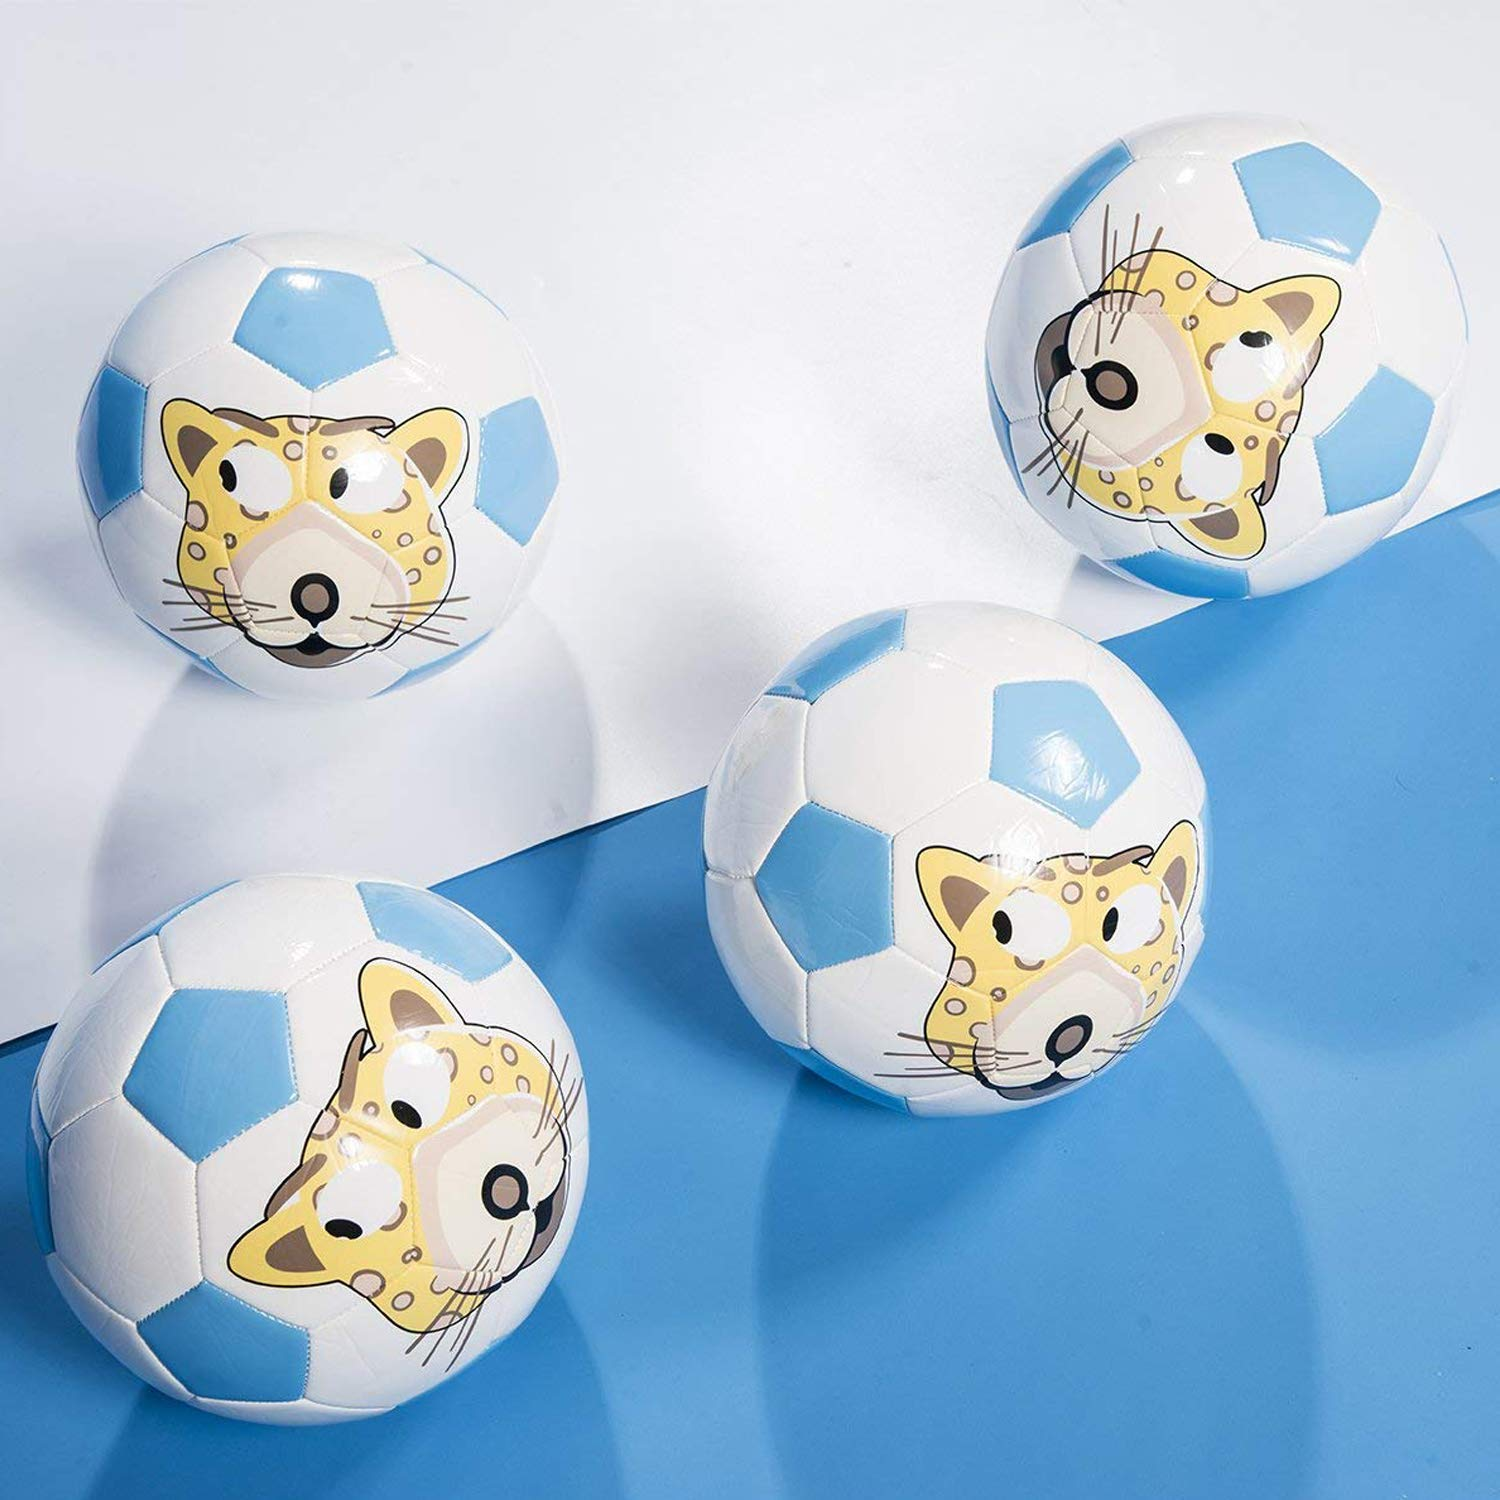 GLORY Soccer Ball with Pump Cartoon Toddler Soft Training Ball for Outdoor Indoor Match Game Size 5 Foot Control Kicking Practice